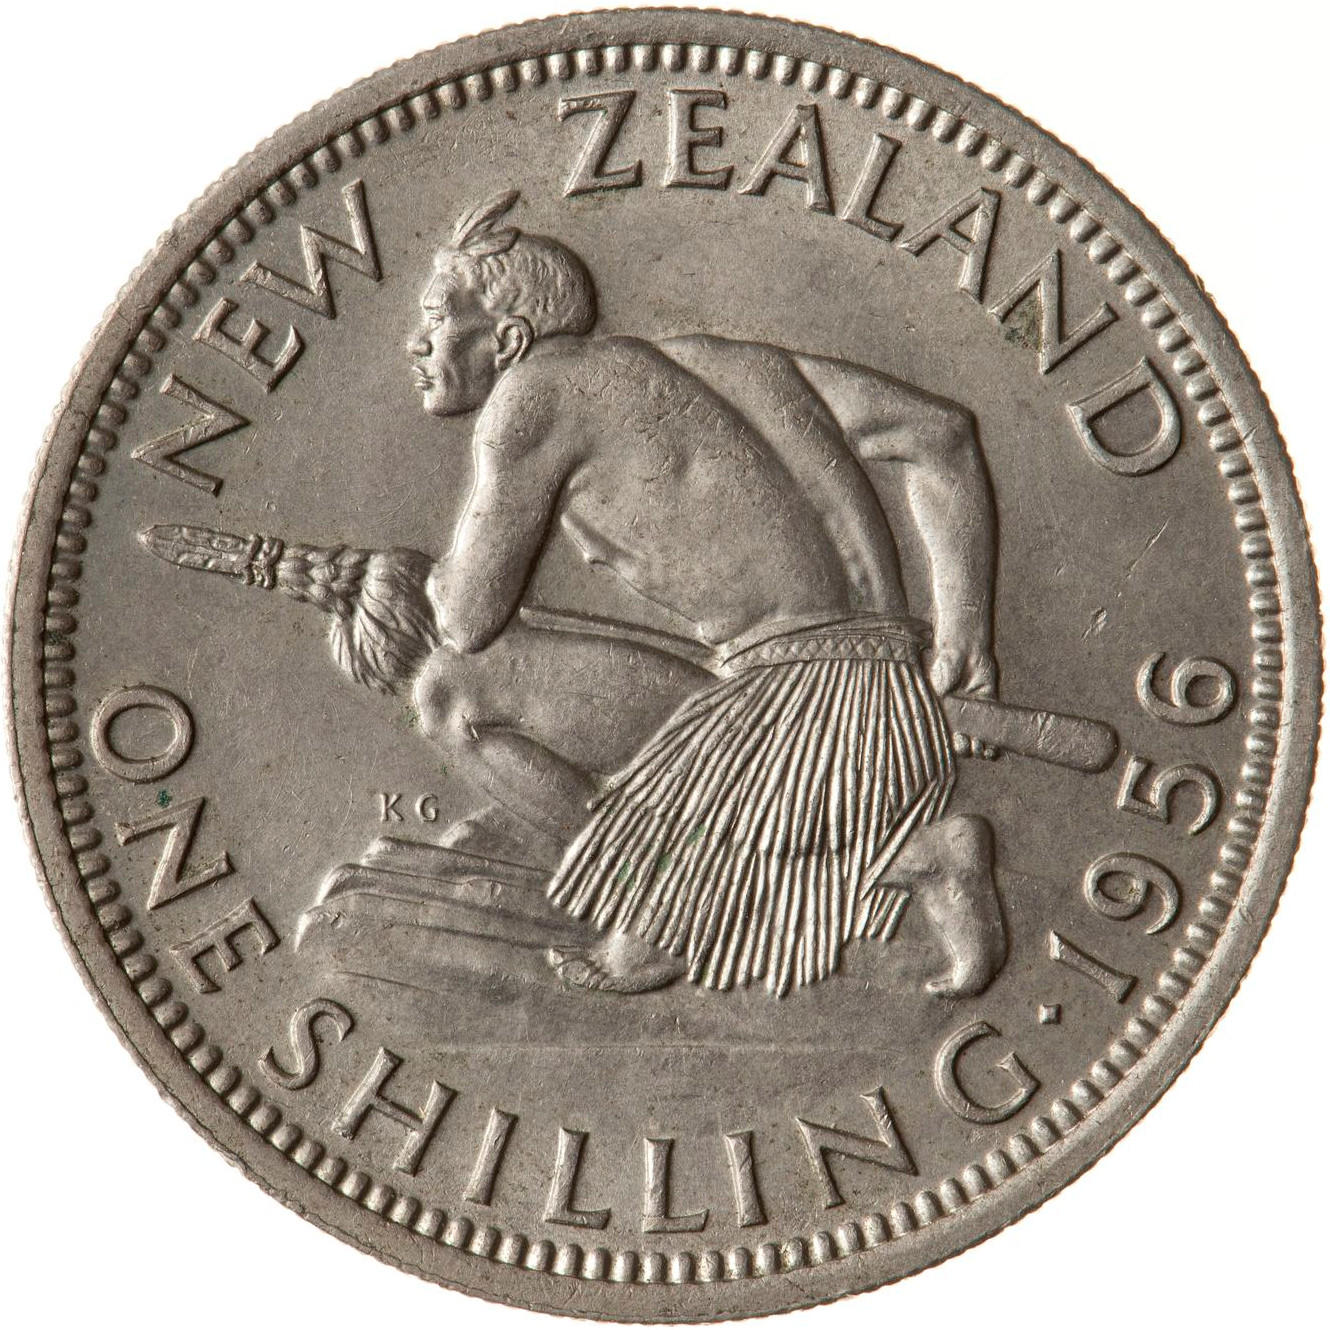 Shilling 1956: Photo Coin - 1 Shilling, New Zealand, 1956